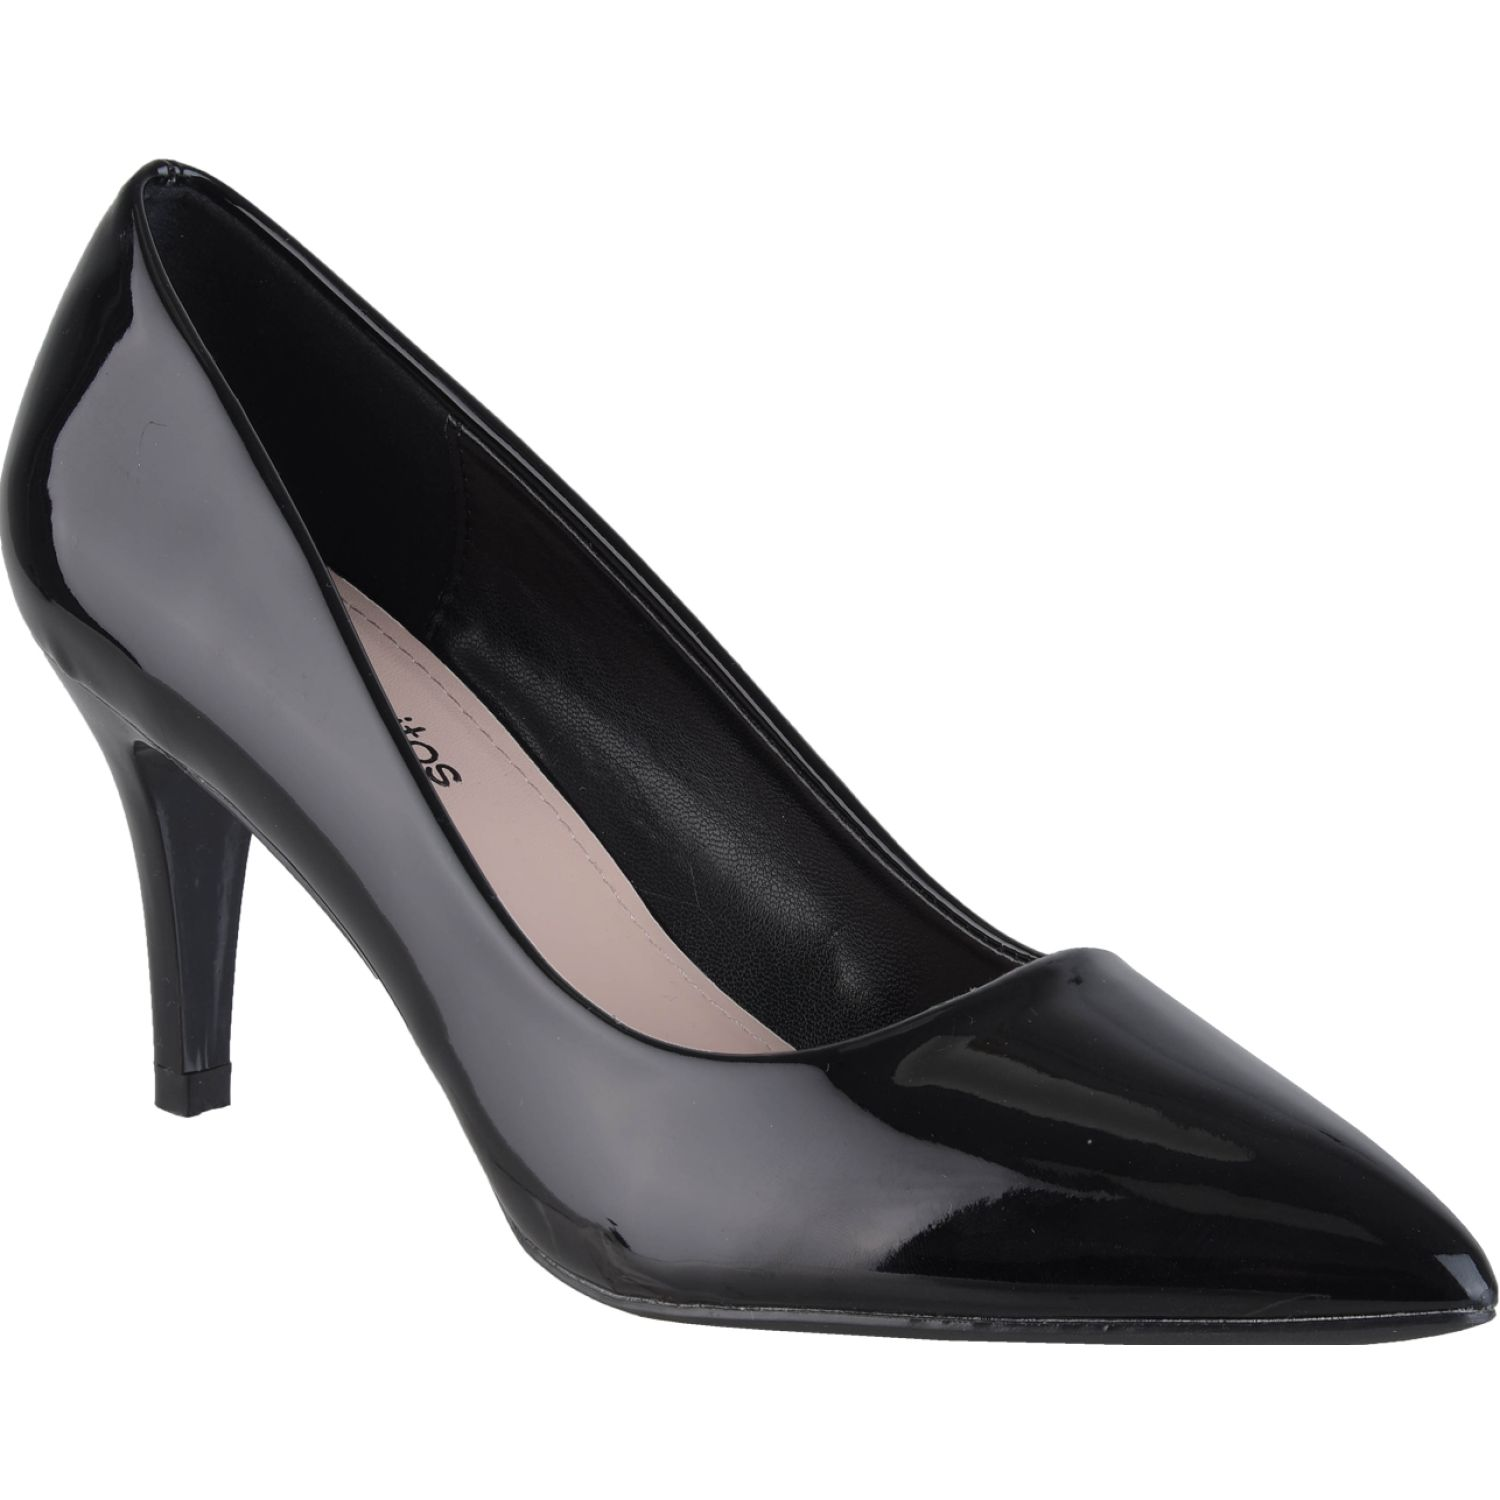 Platanitos cv 8811 Negro Estiletos y Pumps